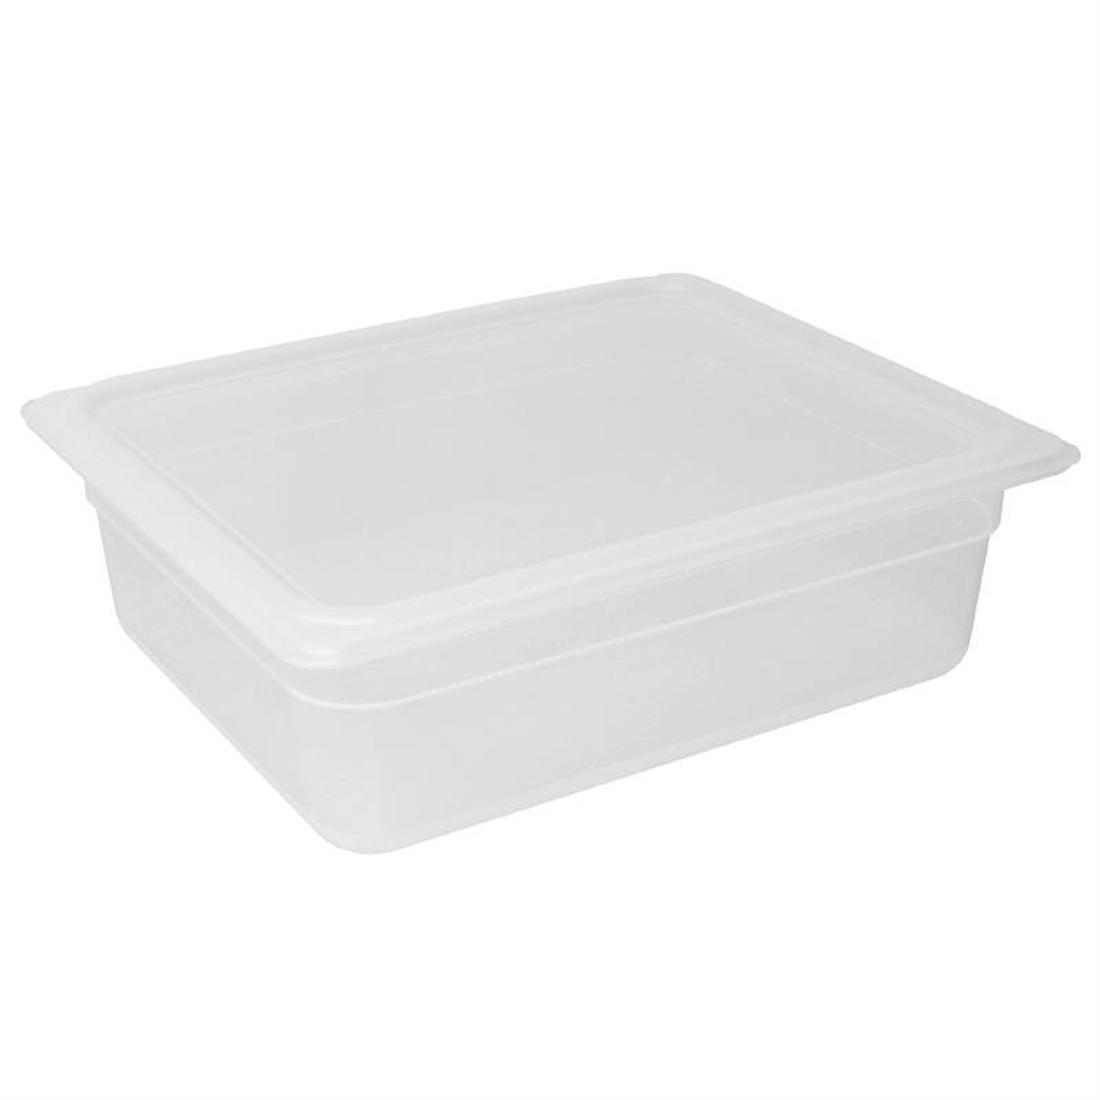 Vogue Polypropylene 1/2 Gastronorm Container with Lid 100mm - Pack of 4 - GJ515